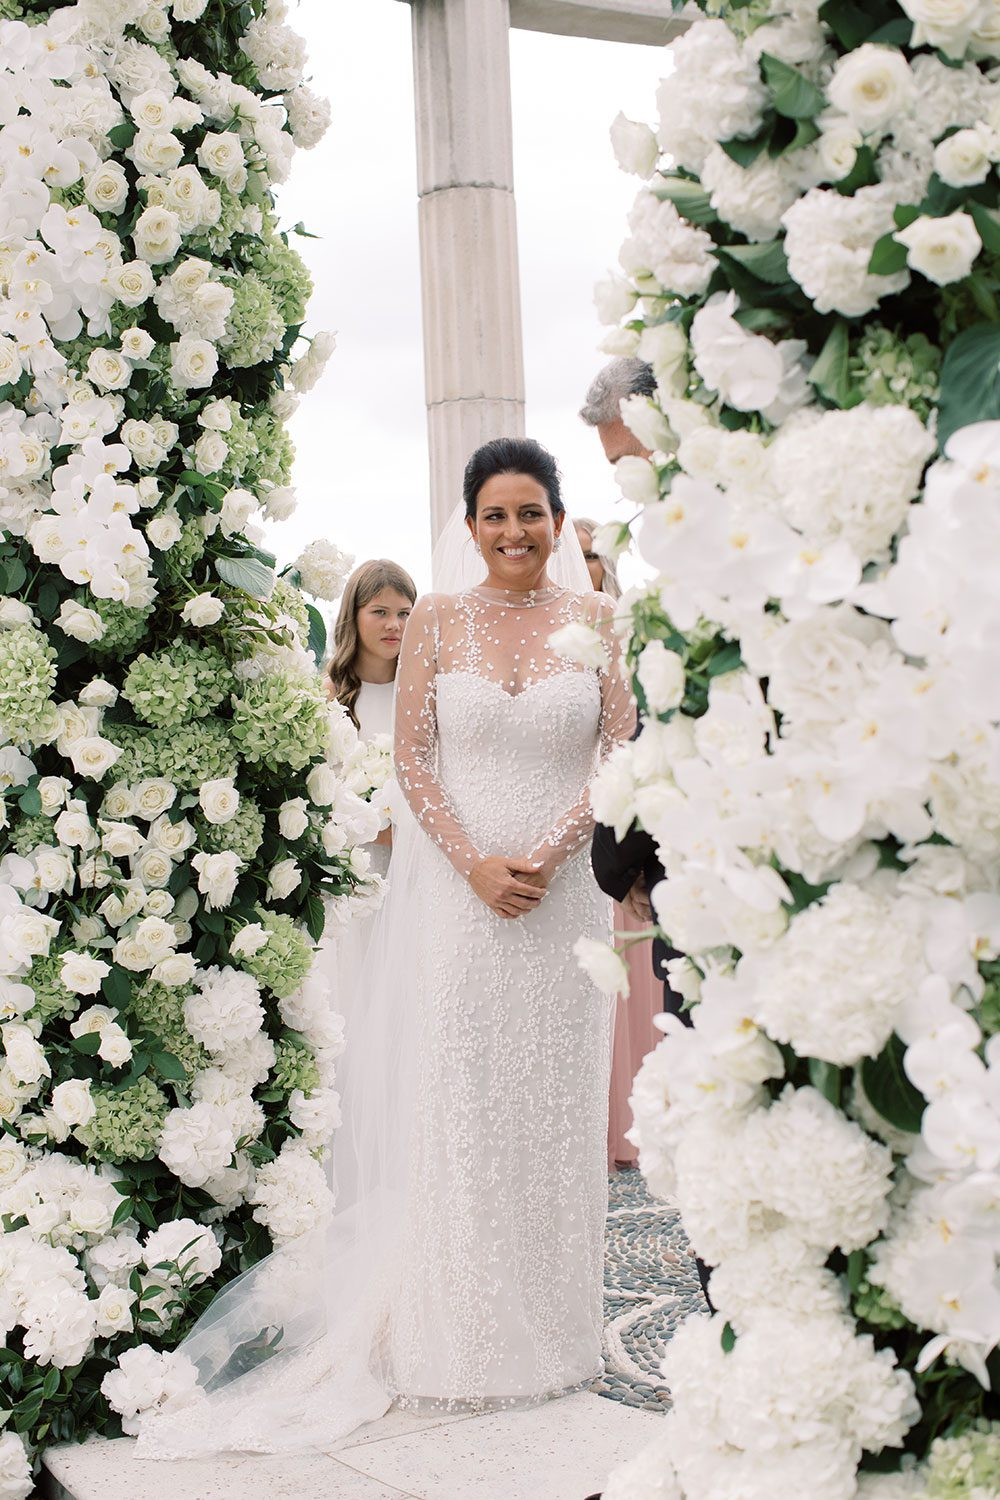 Bride wearing bespoke gown by Auckland wedding dress designer Vinka Design, with a high neckline and delicate spotted embroidery - with flower pillars